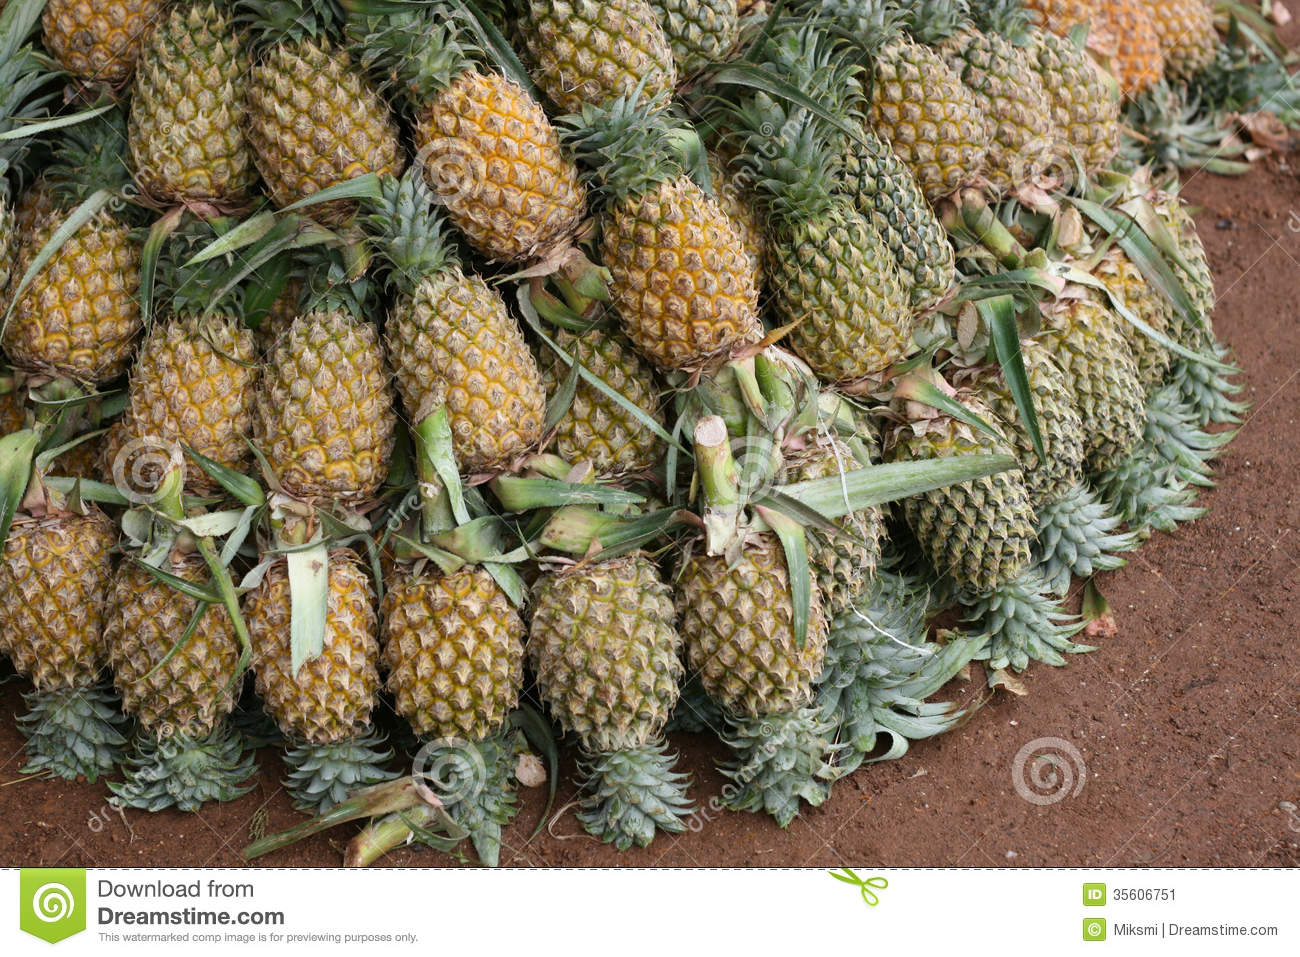 Stock image pineapples image 35606751 for Pineapple in the ground